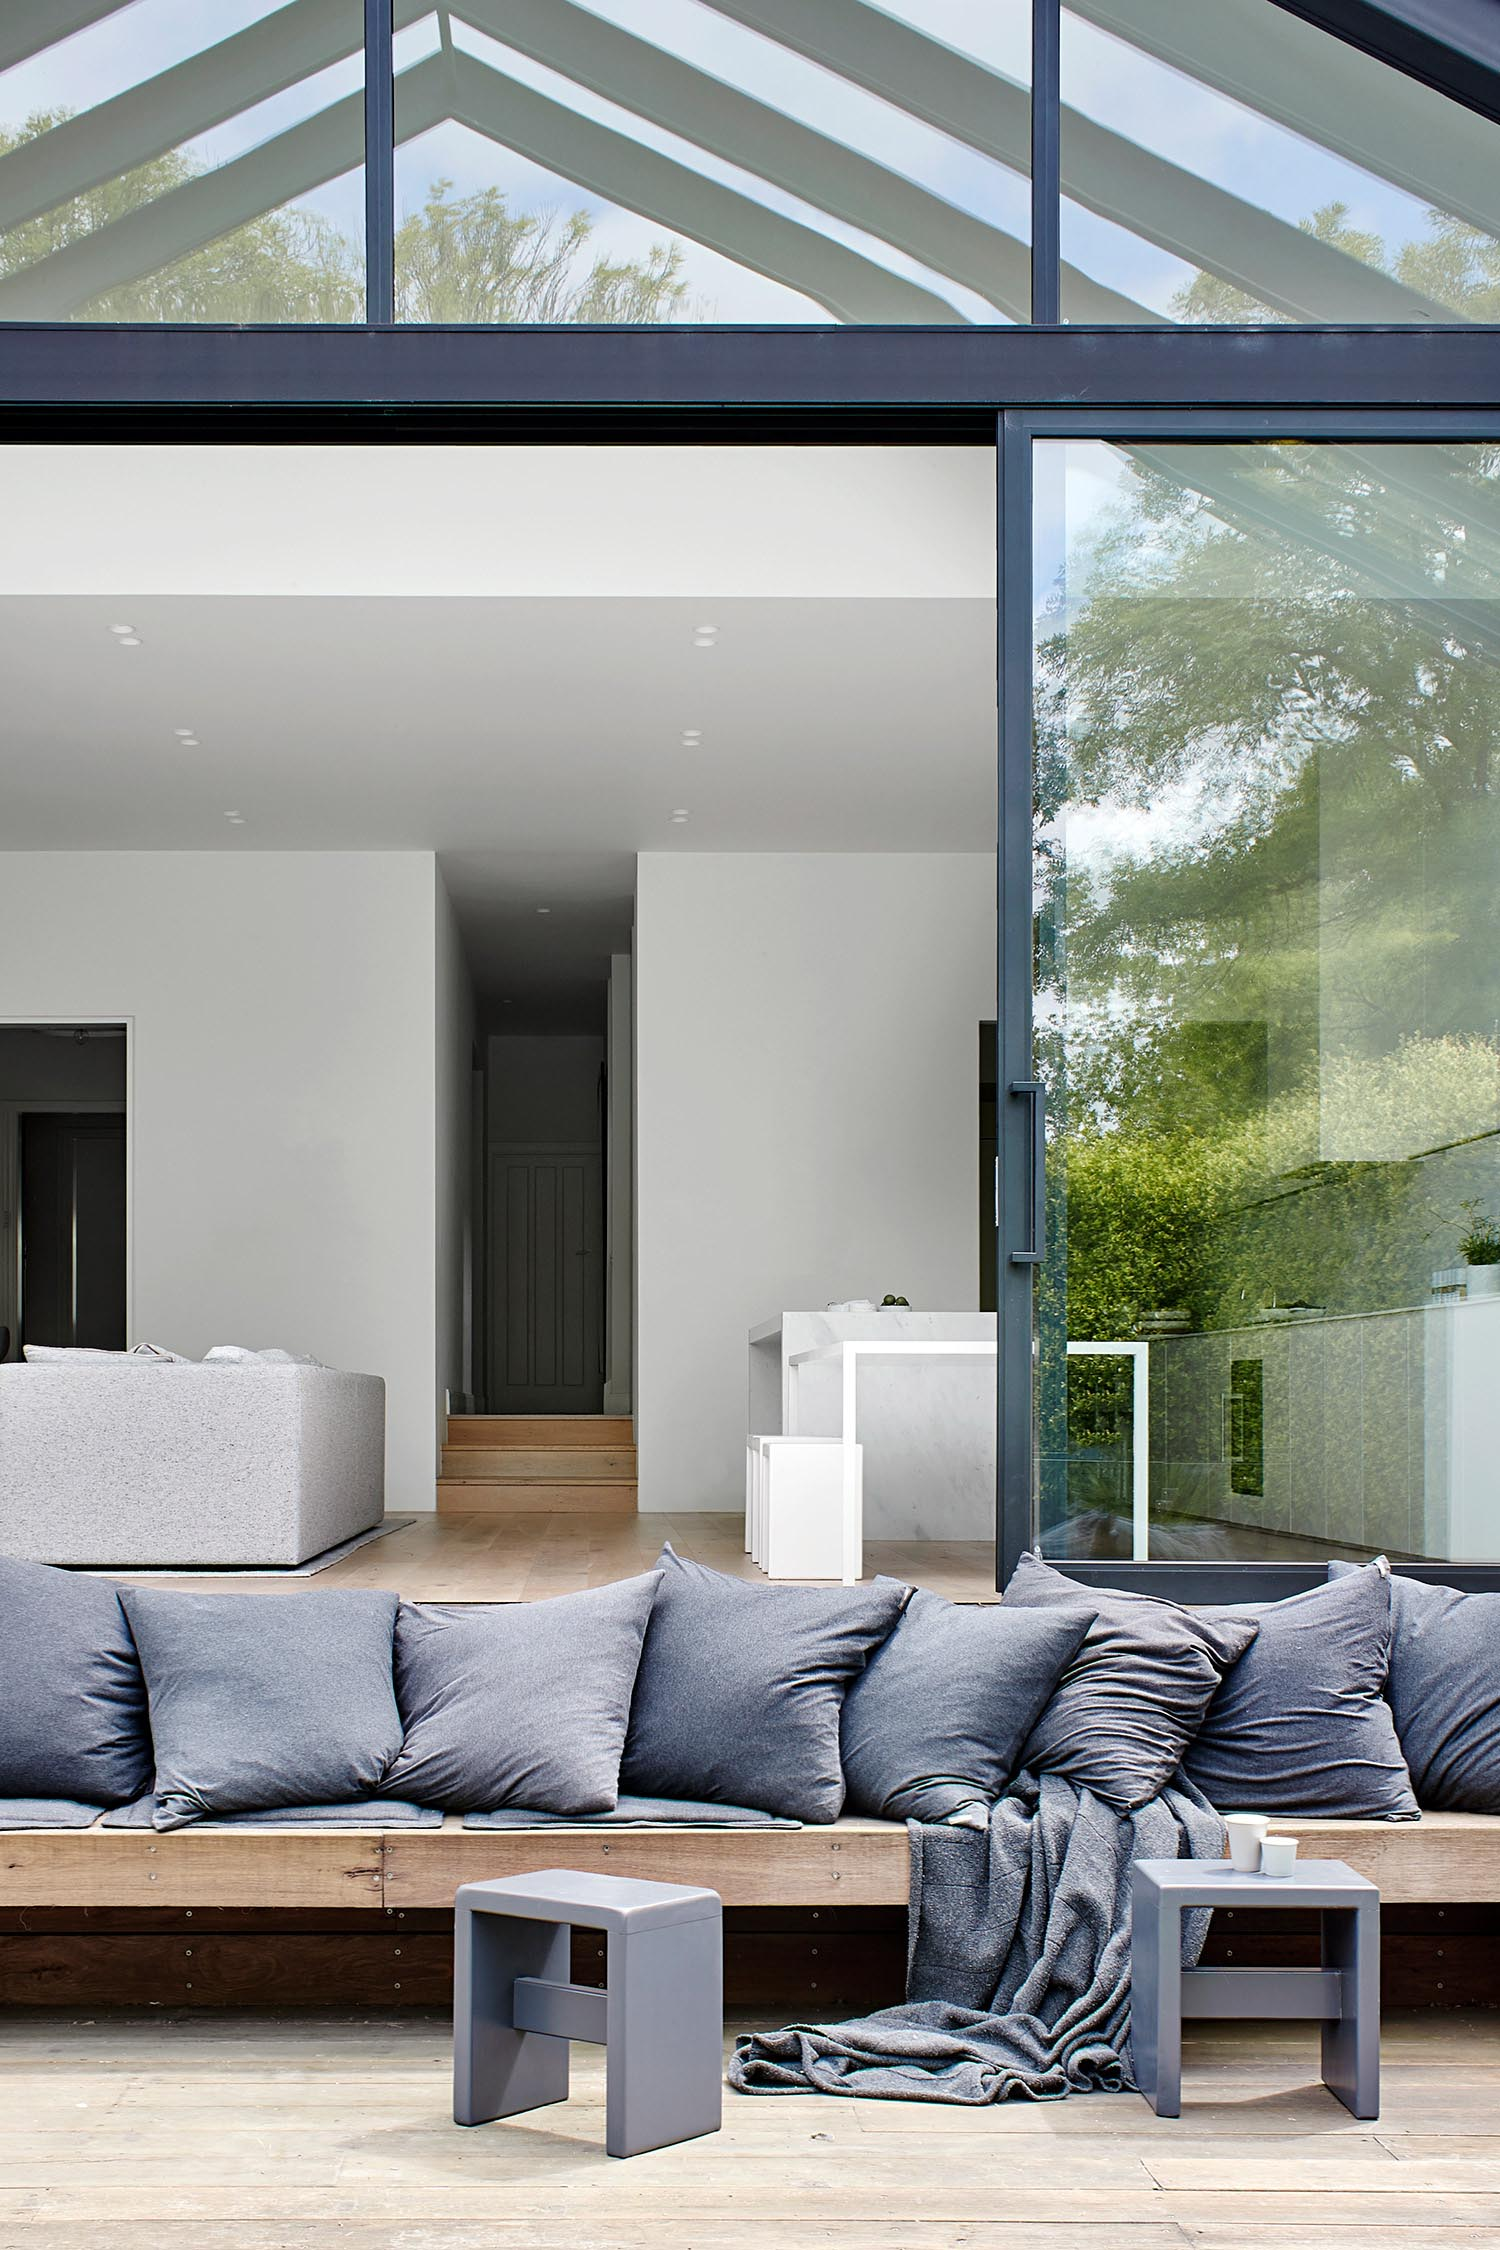 A modern house extension with a custom built outdoor seating area.